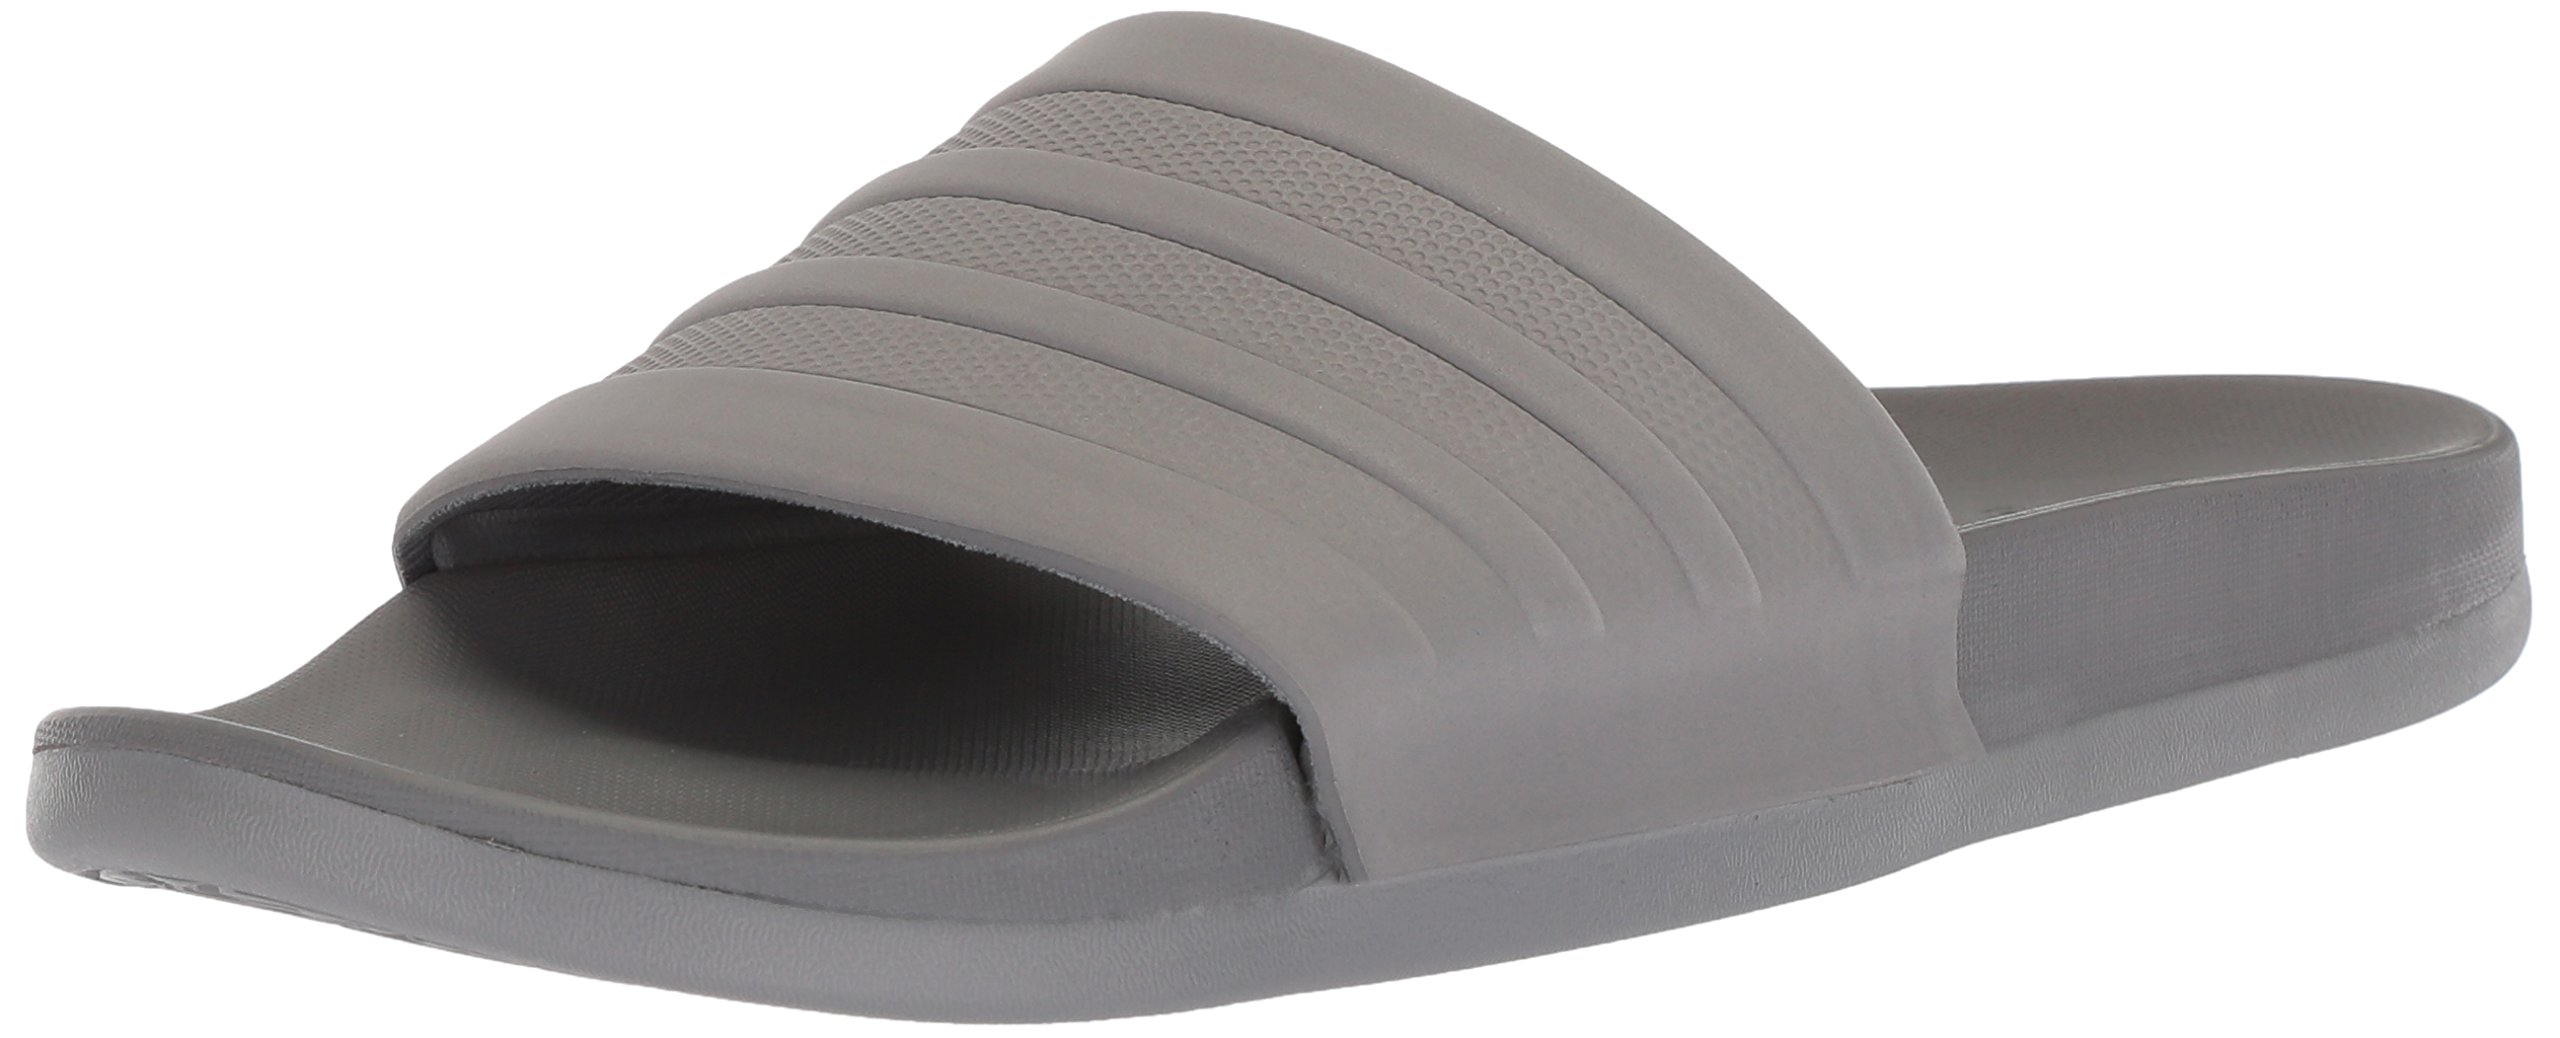 adidas Performance Men's Adilette Comfort Slide Sandal, Grey/Grey/Grey, 11 M US